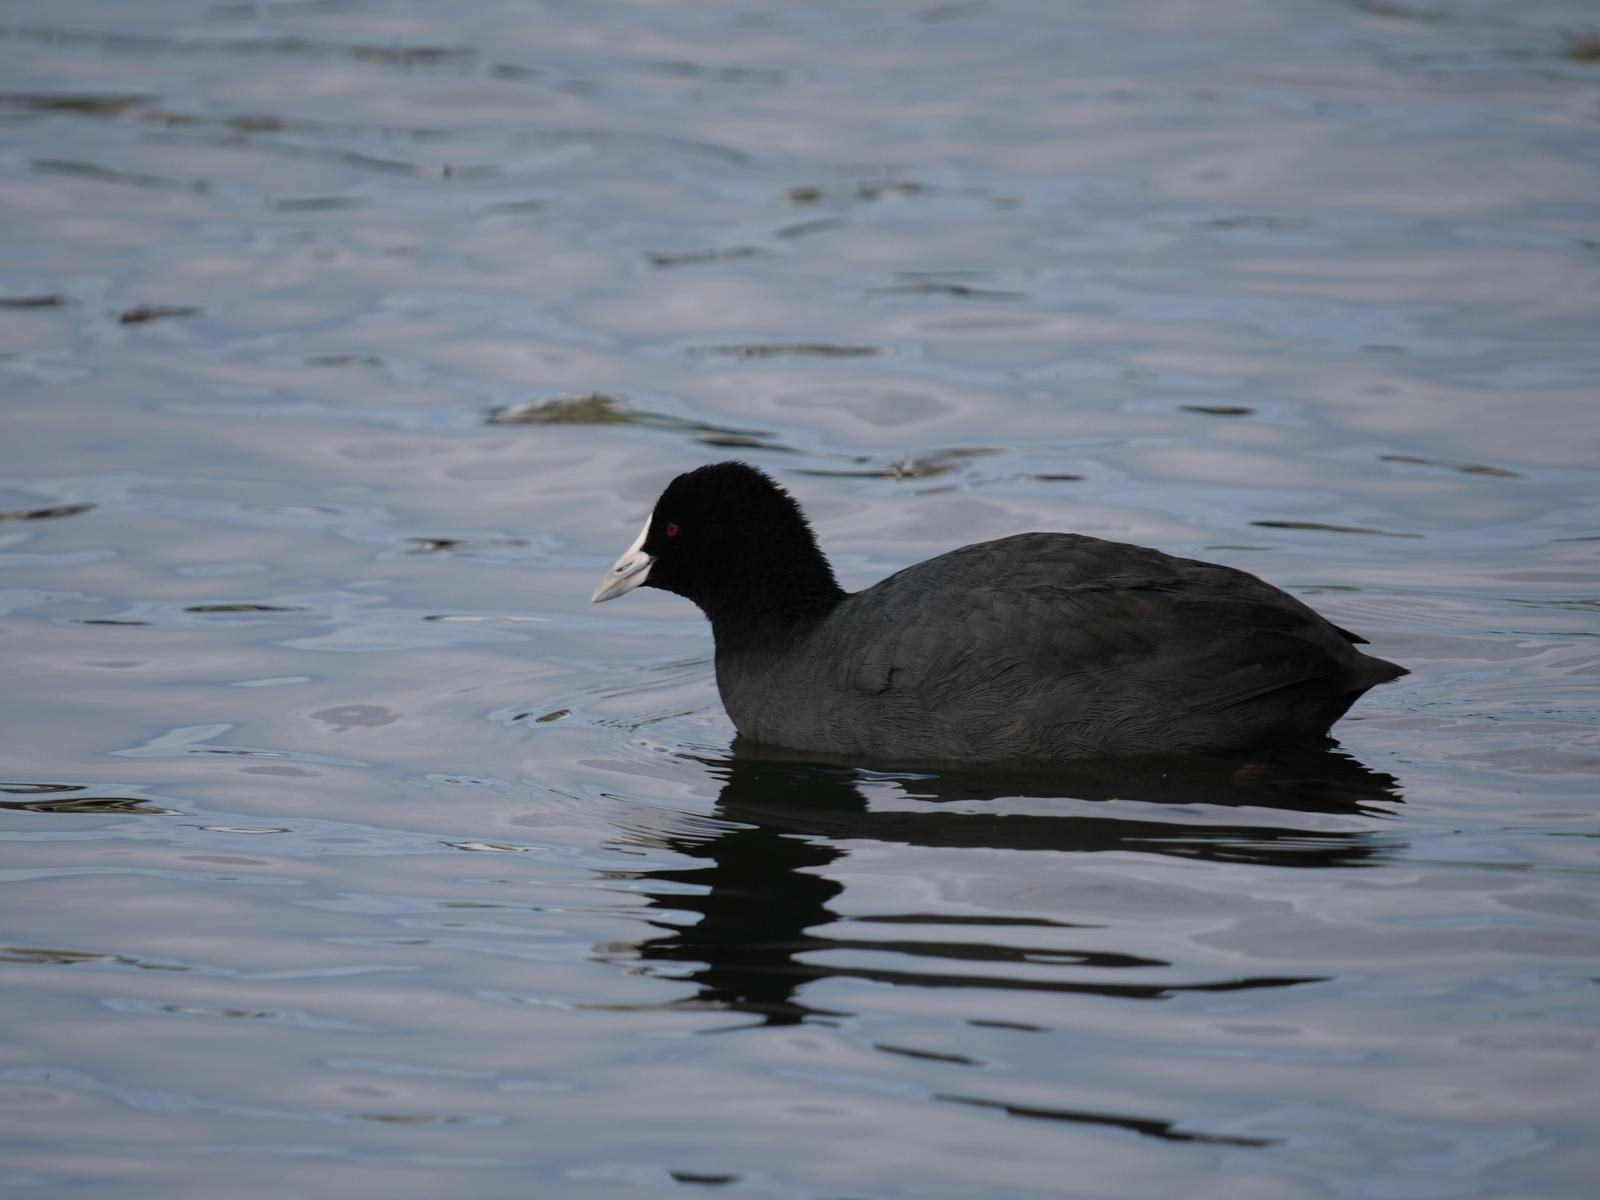 Eurasian Coot Photo by Peter Lowe